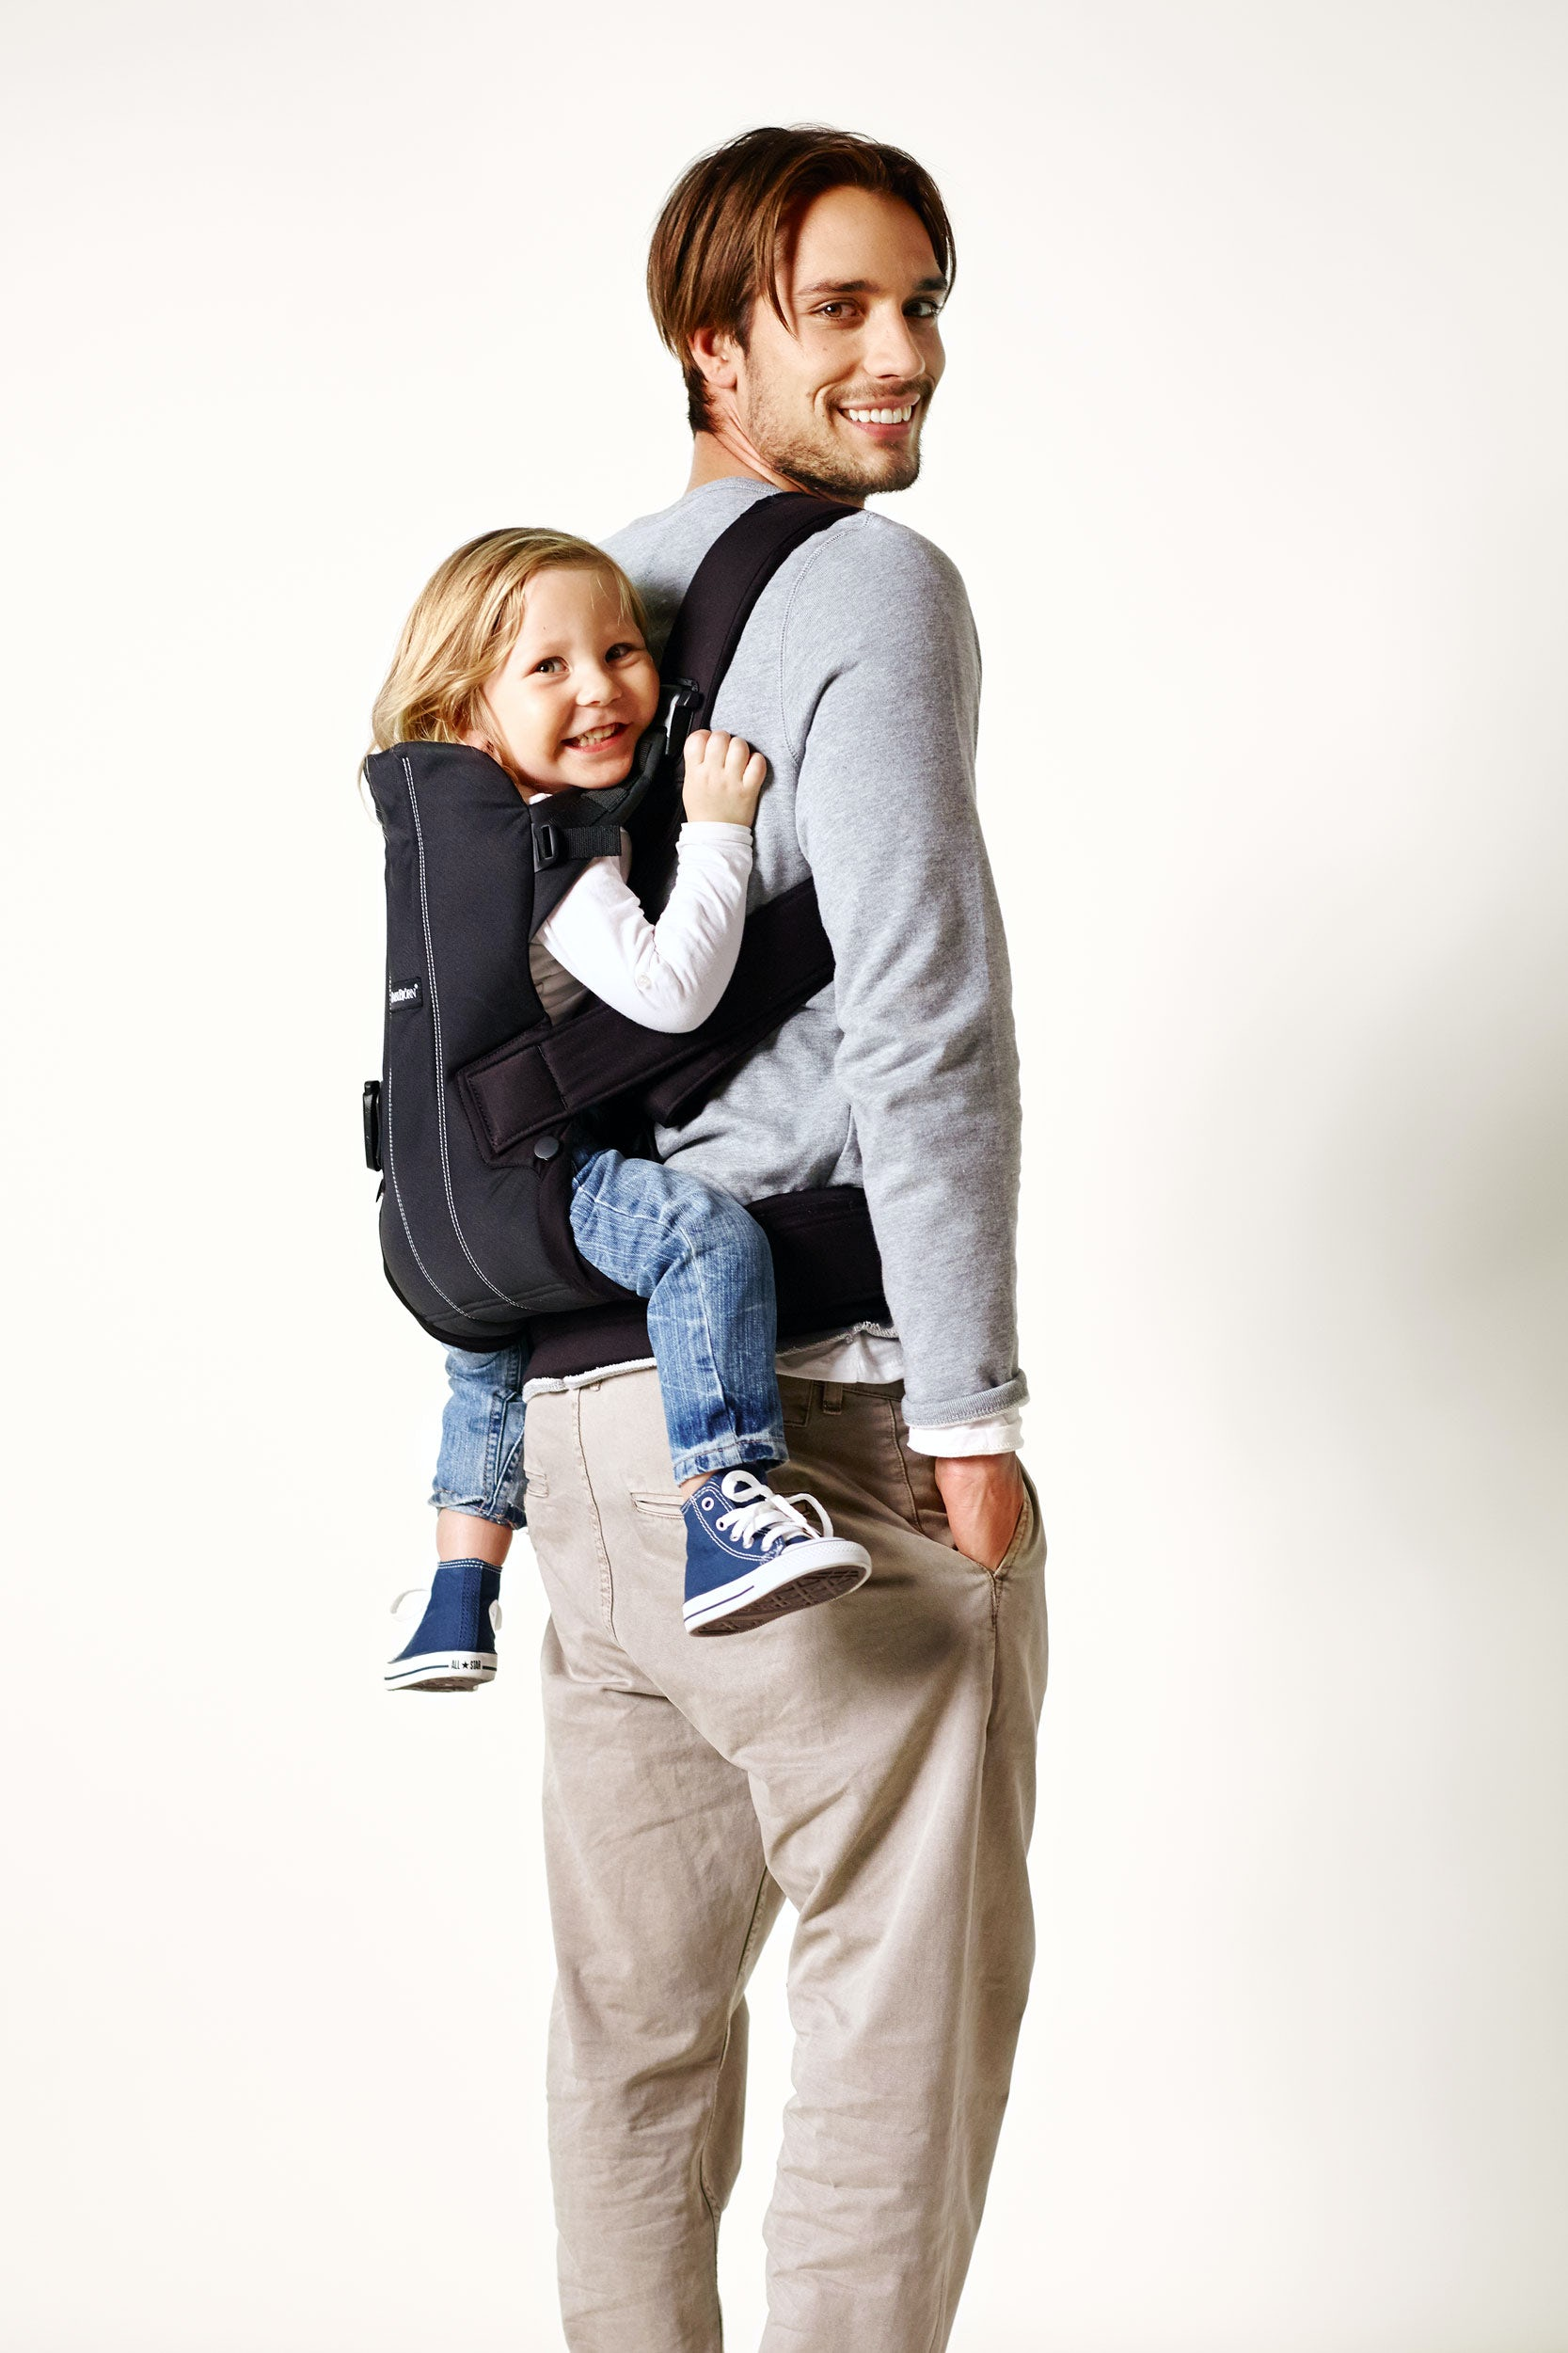 baby bjorn carrier infant insert